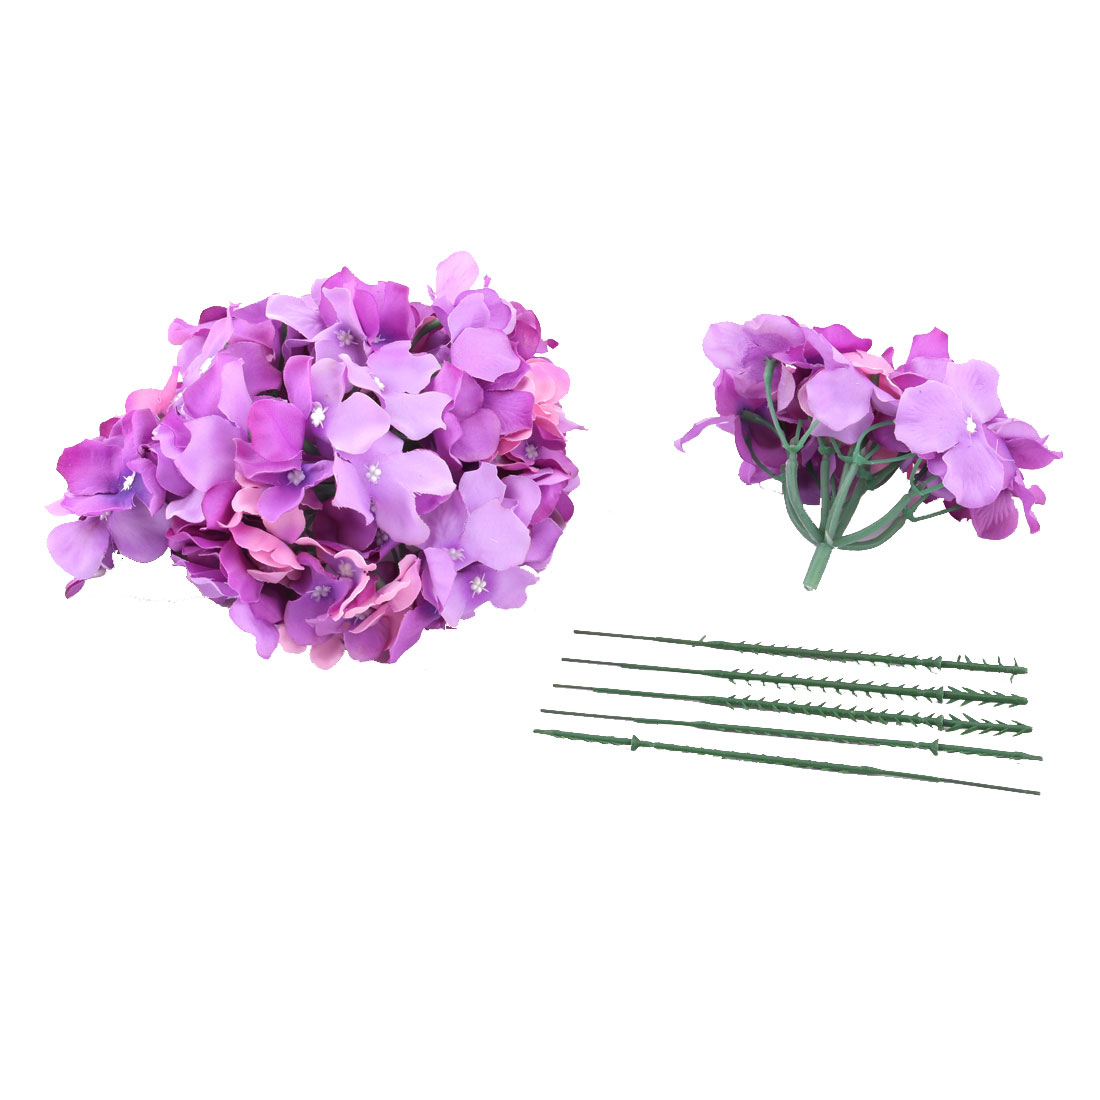 Festival Celebration Aritificial Flower Handcraft Garland Bouquet Decor Purple 5pcs